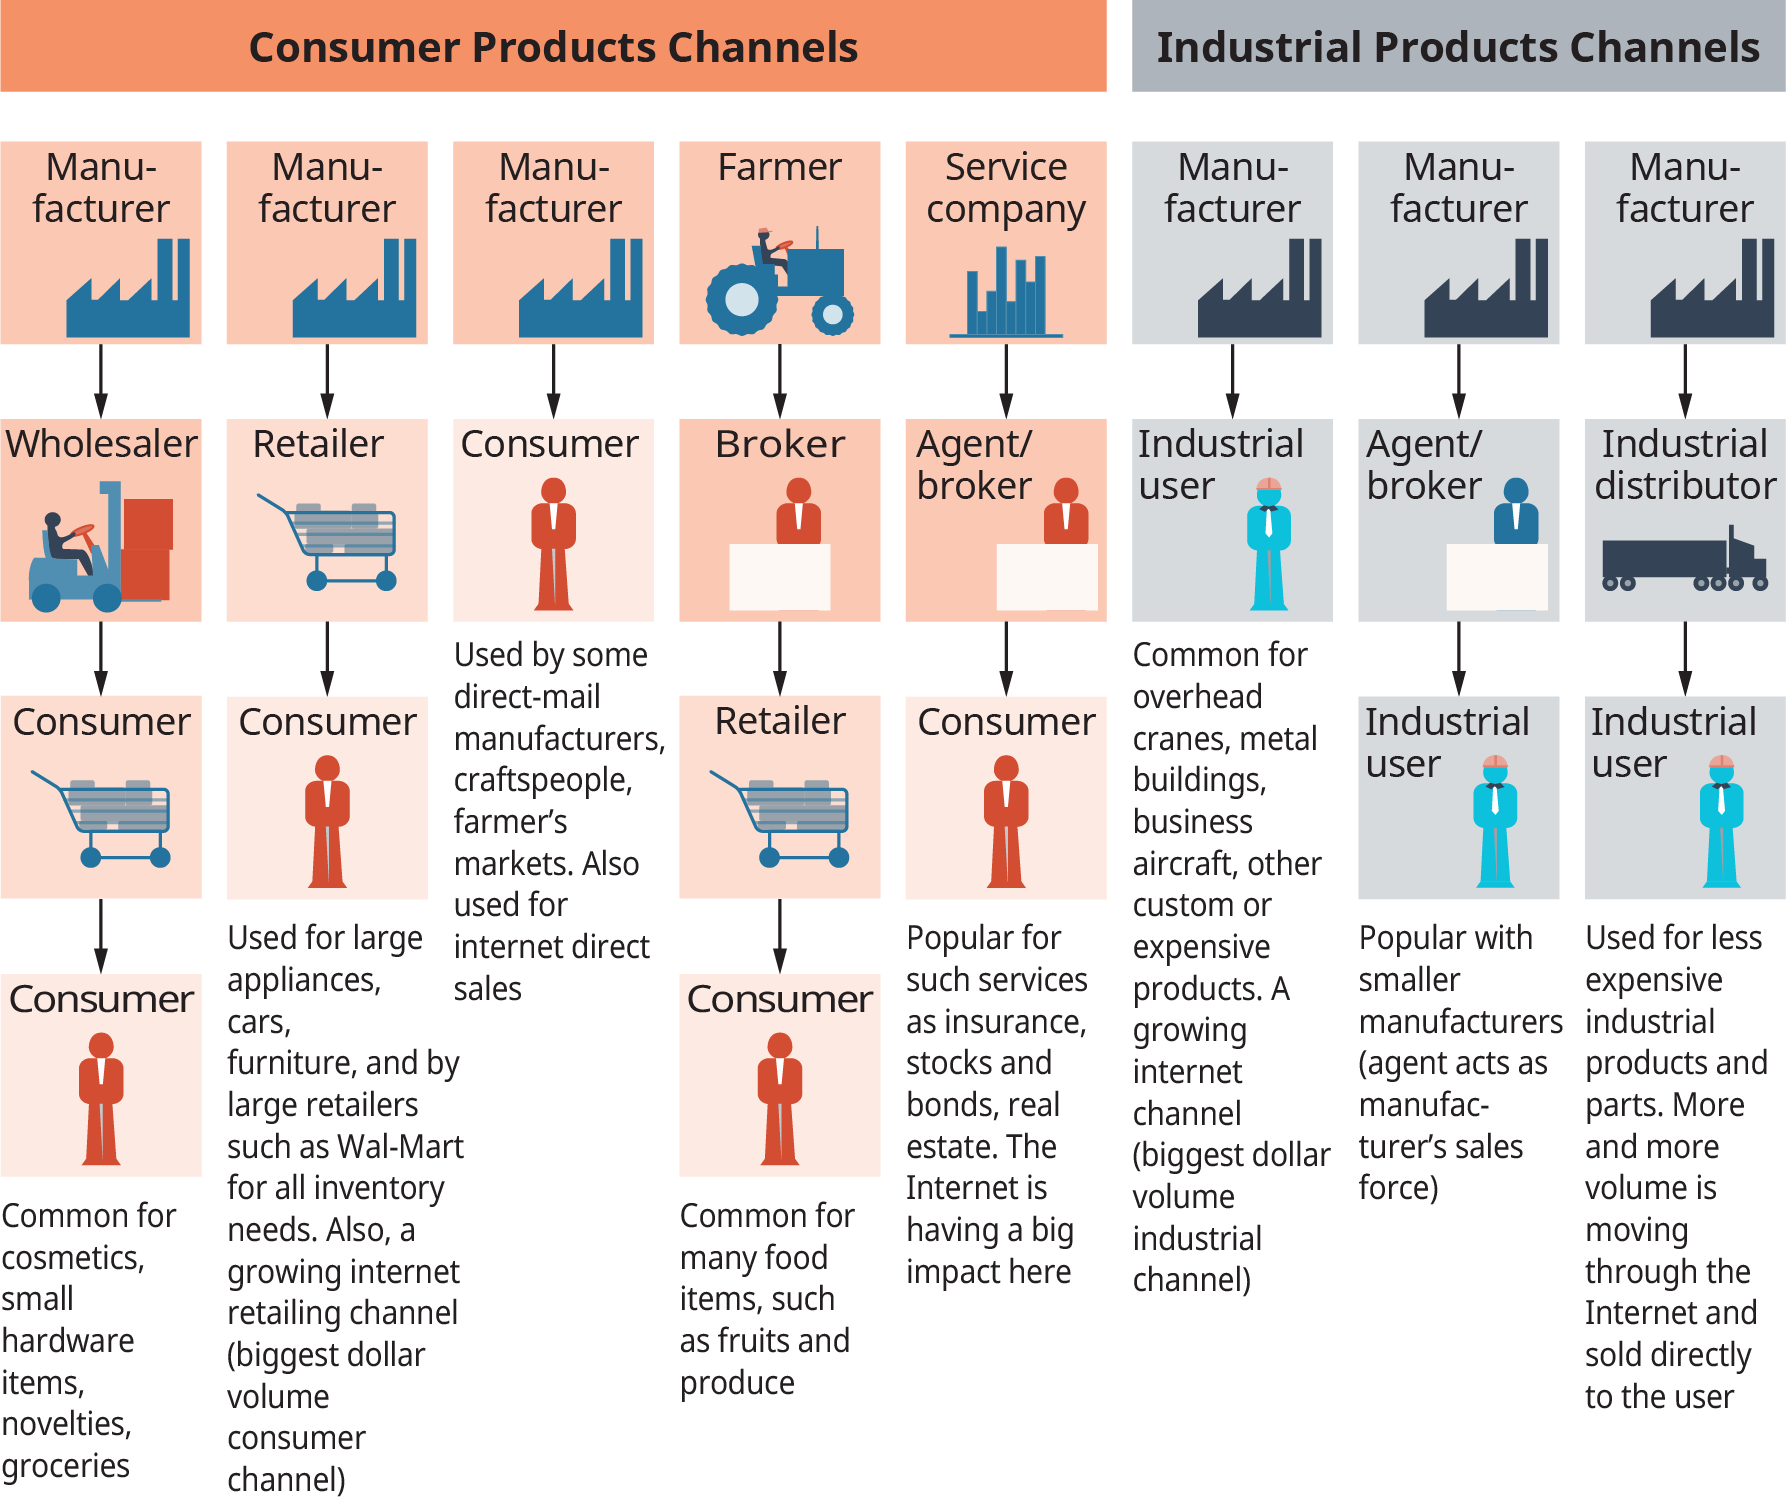 There are 5 consumer products channels shown, and 3 industrial products channels. First consumer products channel starts with a manufacturer, then to a wholesaler, then to consumer shown as a shopping cart, then to a consumer shown as an individual. Note at the bottom reads, common for cosmetics, small hardware items, novelties, and groceries. Second channel starts with a manufacturer, then to a retailer, then to consumer. Note reads, used for large appliances, cars, furniture, and by large retailers such as wal mart for all inventory needs. Also, a growing internet retailing channel, biggest dollar volume consumer channel. Third channel starts with a manufacturer, then to consumer. The note reads, used by some direct mail manufacturers, craftspeople, farmer's markets. Also used for interned direct sales. Fourth channel starts with a farmer, then to a broker, then to a retailer, then to a consumer. Note reads, common for many food items, such as fruits, and produce. Fifth channel starts with a service company, then to an agent or broker, then to consumer. Note reads, popular services as insurance, stocks and bonds, and real estate. The internet is having a big impact here. The first industrial products channel starts with a manufacturer, then to an industrial user. Note reads, common for overhead cranes, metal buildings, aircraft, other custom or expensive products. A growing internet channel, biggest dollar volume industrial channel. The second channel starts with a manufacturer, then to an agent or broker, then to an industrial user. Note reads, popular with smaller manufacturers, agents act as manufacturer's sales force. The third industrial products channel starts with a manufacturer, then to an industrial distributor, then to an industrial user. Used for less expensive industrial products and parts. More and more volume is moving through the internet and sold directly to the user.